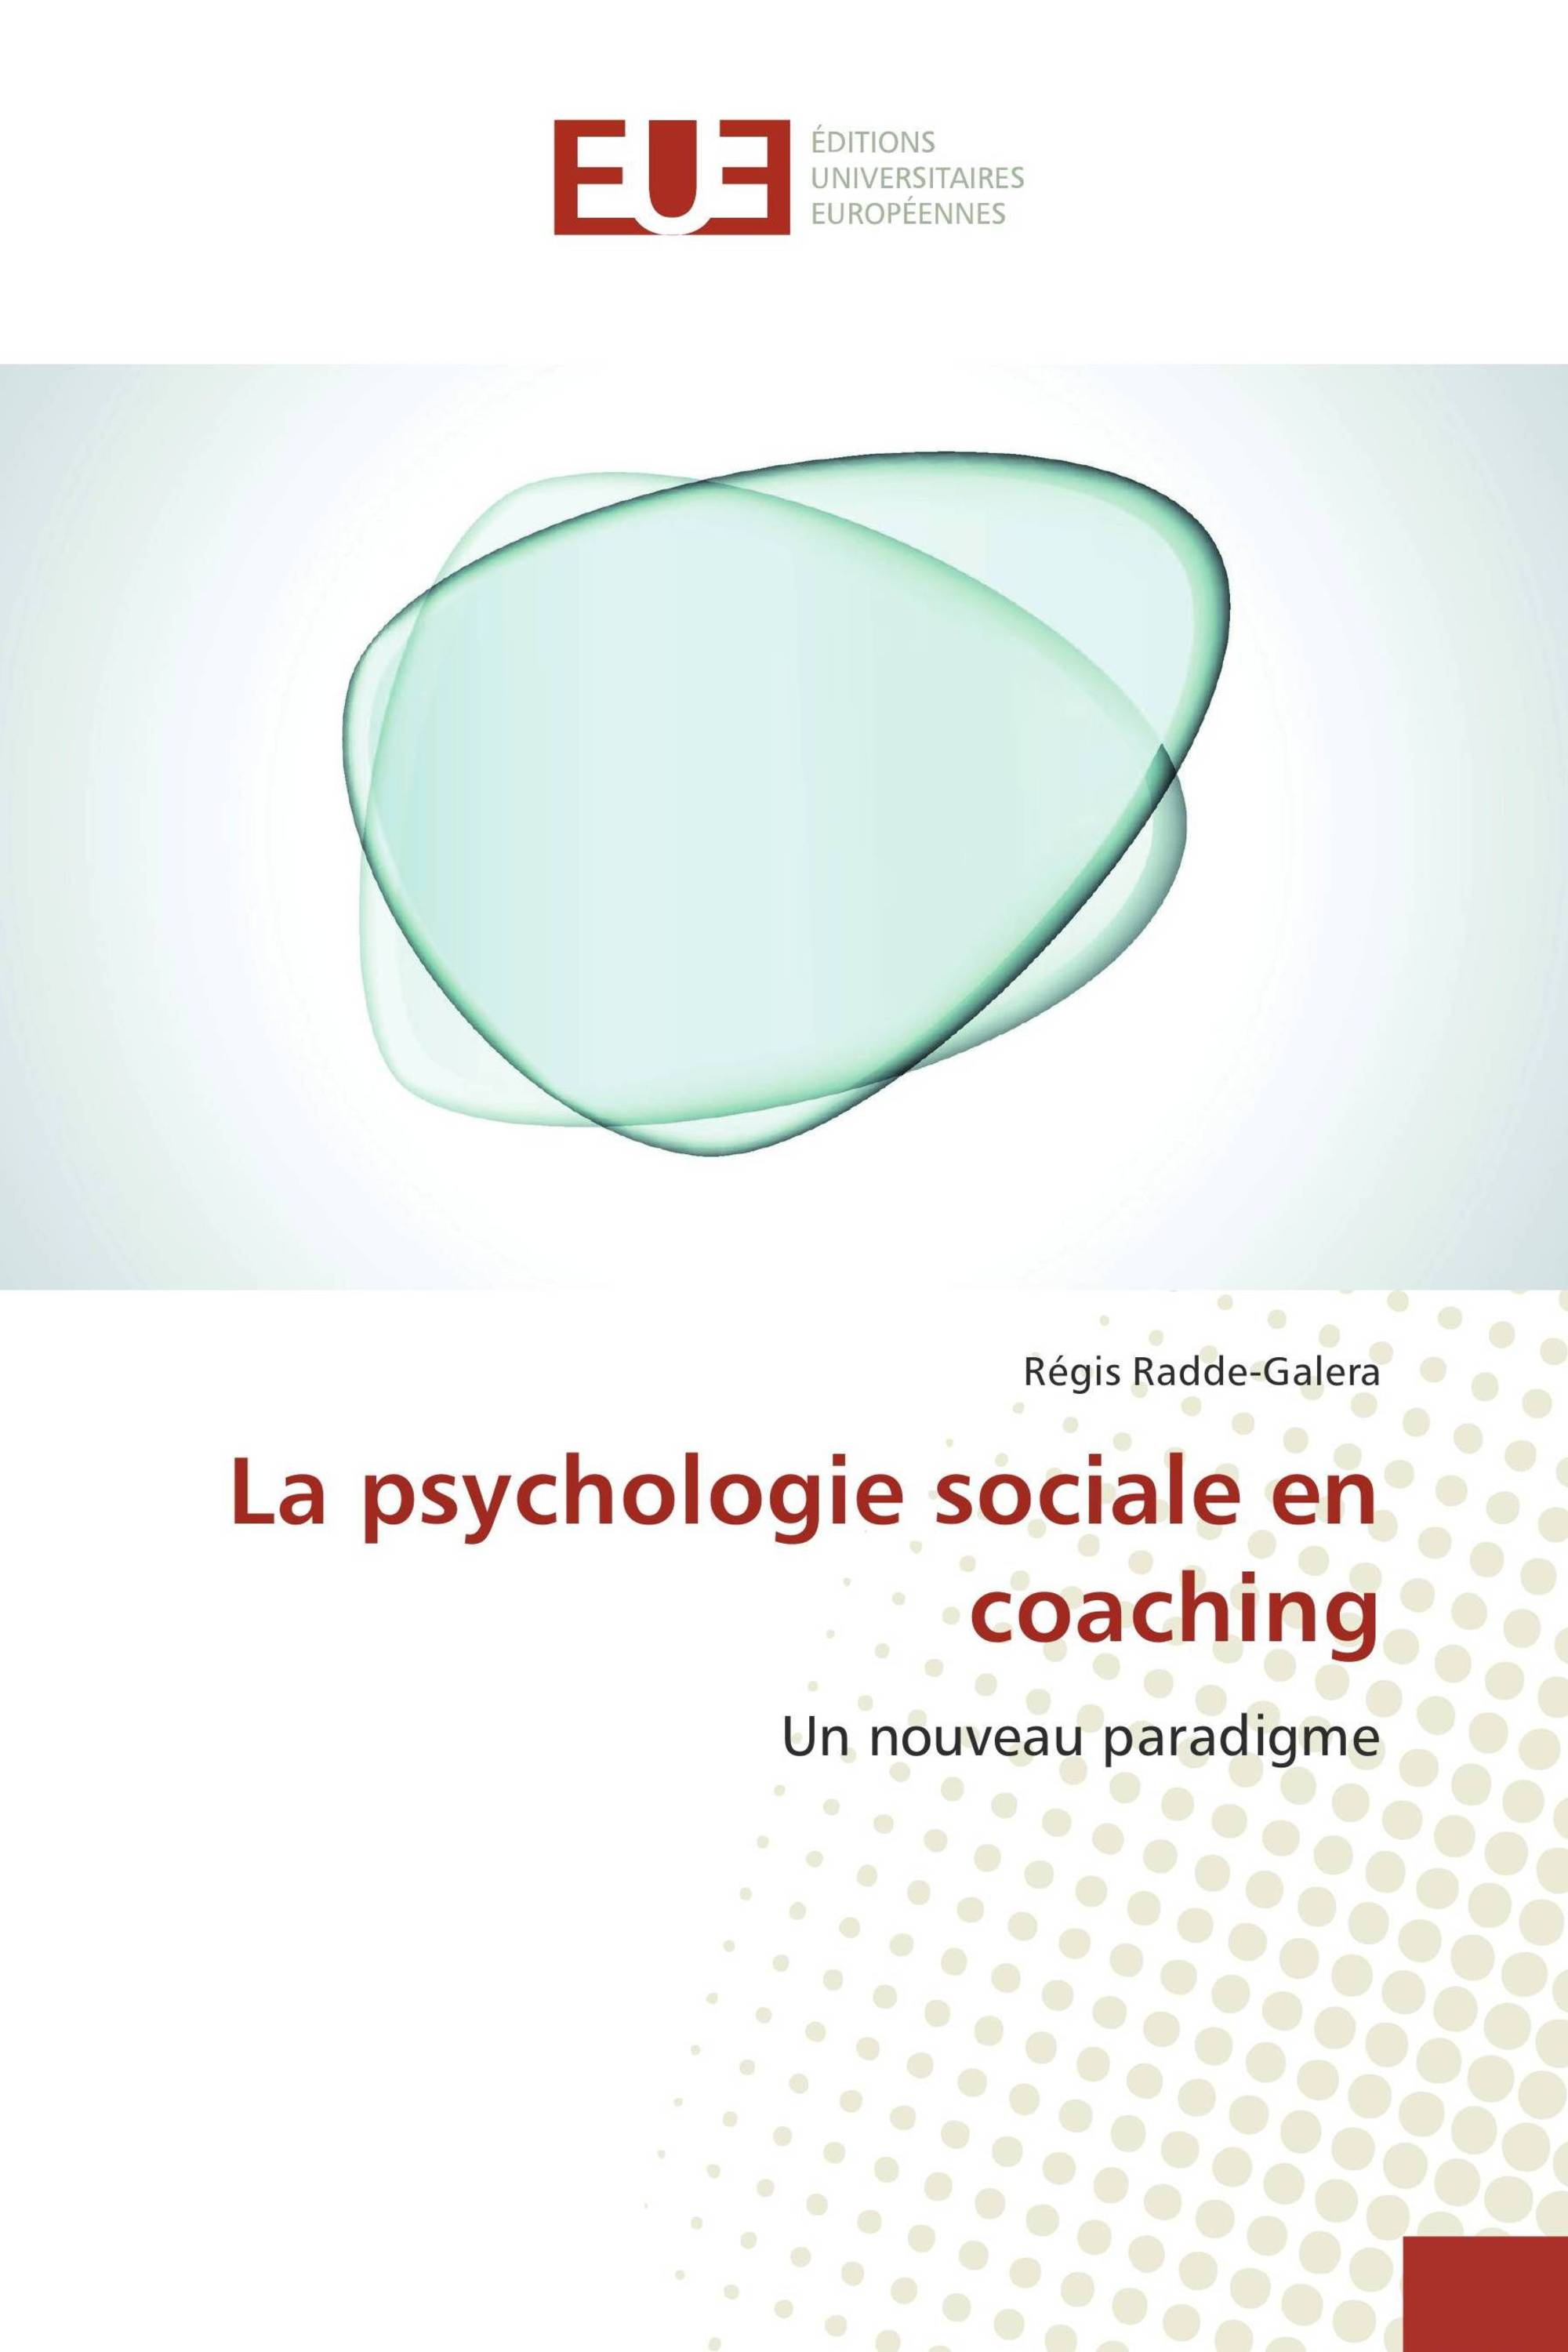 La psychologie sociale en coaching